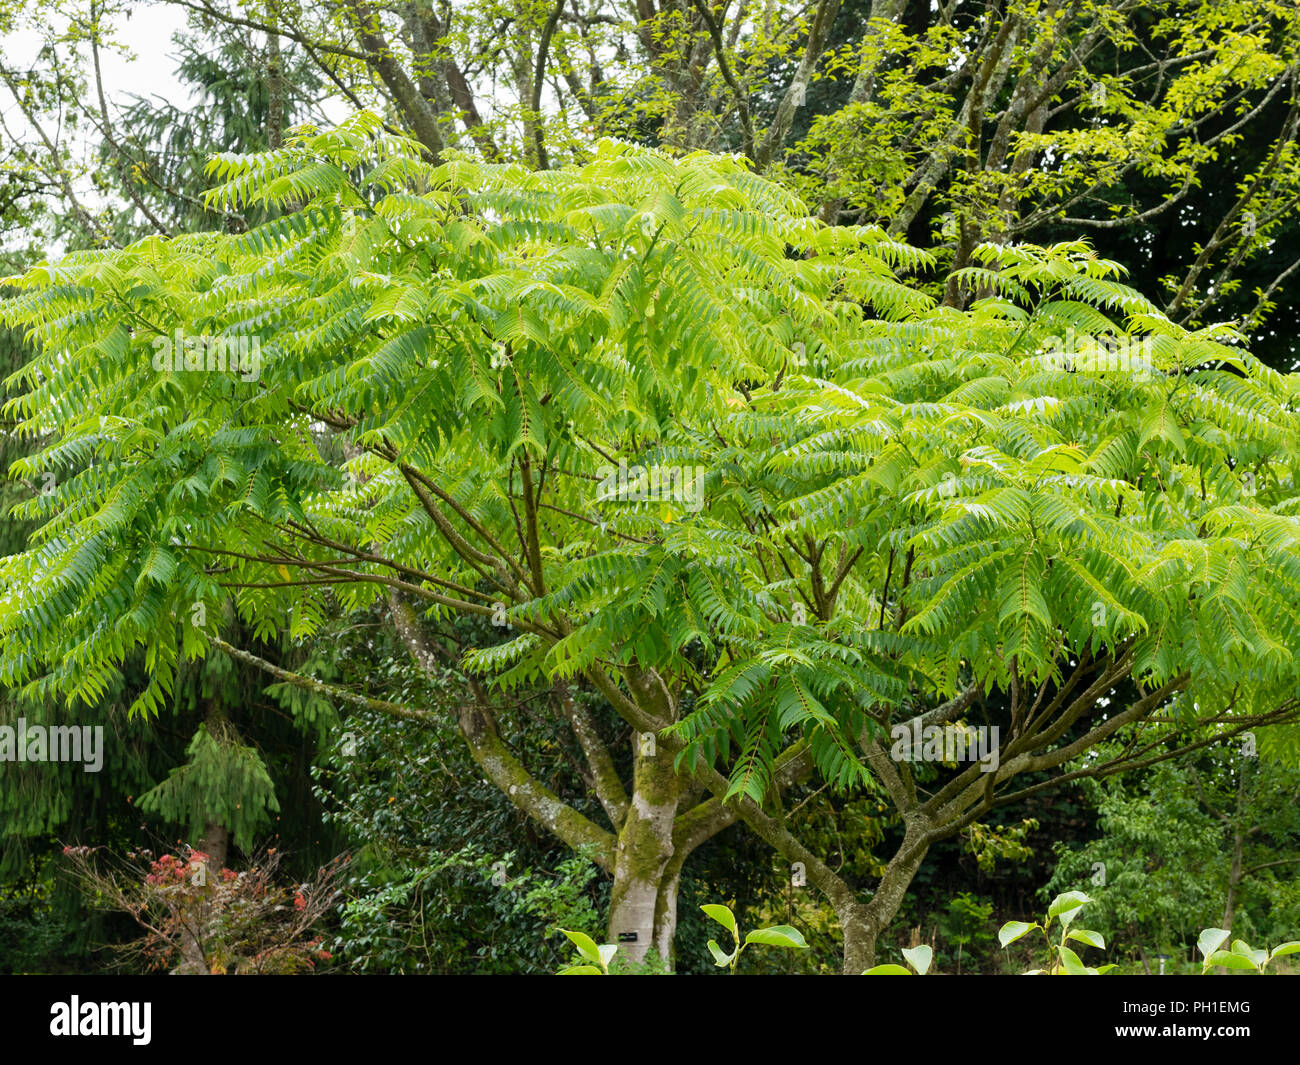 Pinnate foliage and spreading habit of the half hardy prickly ash tree, Zanthoxylum ailanthoides - Stock Image